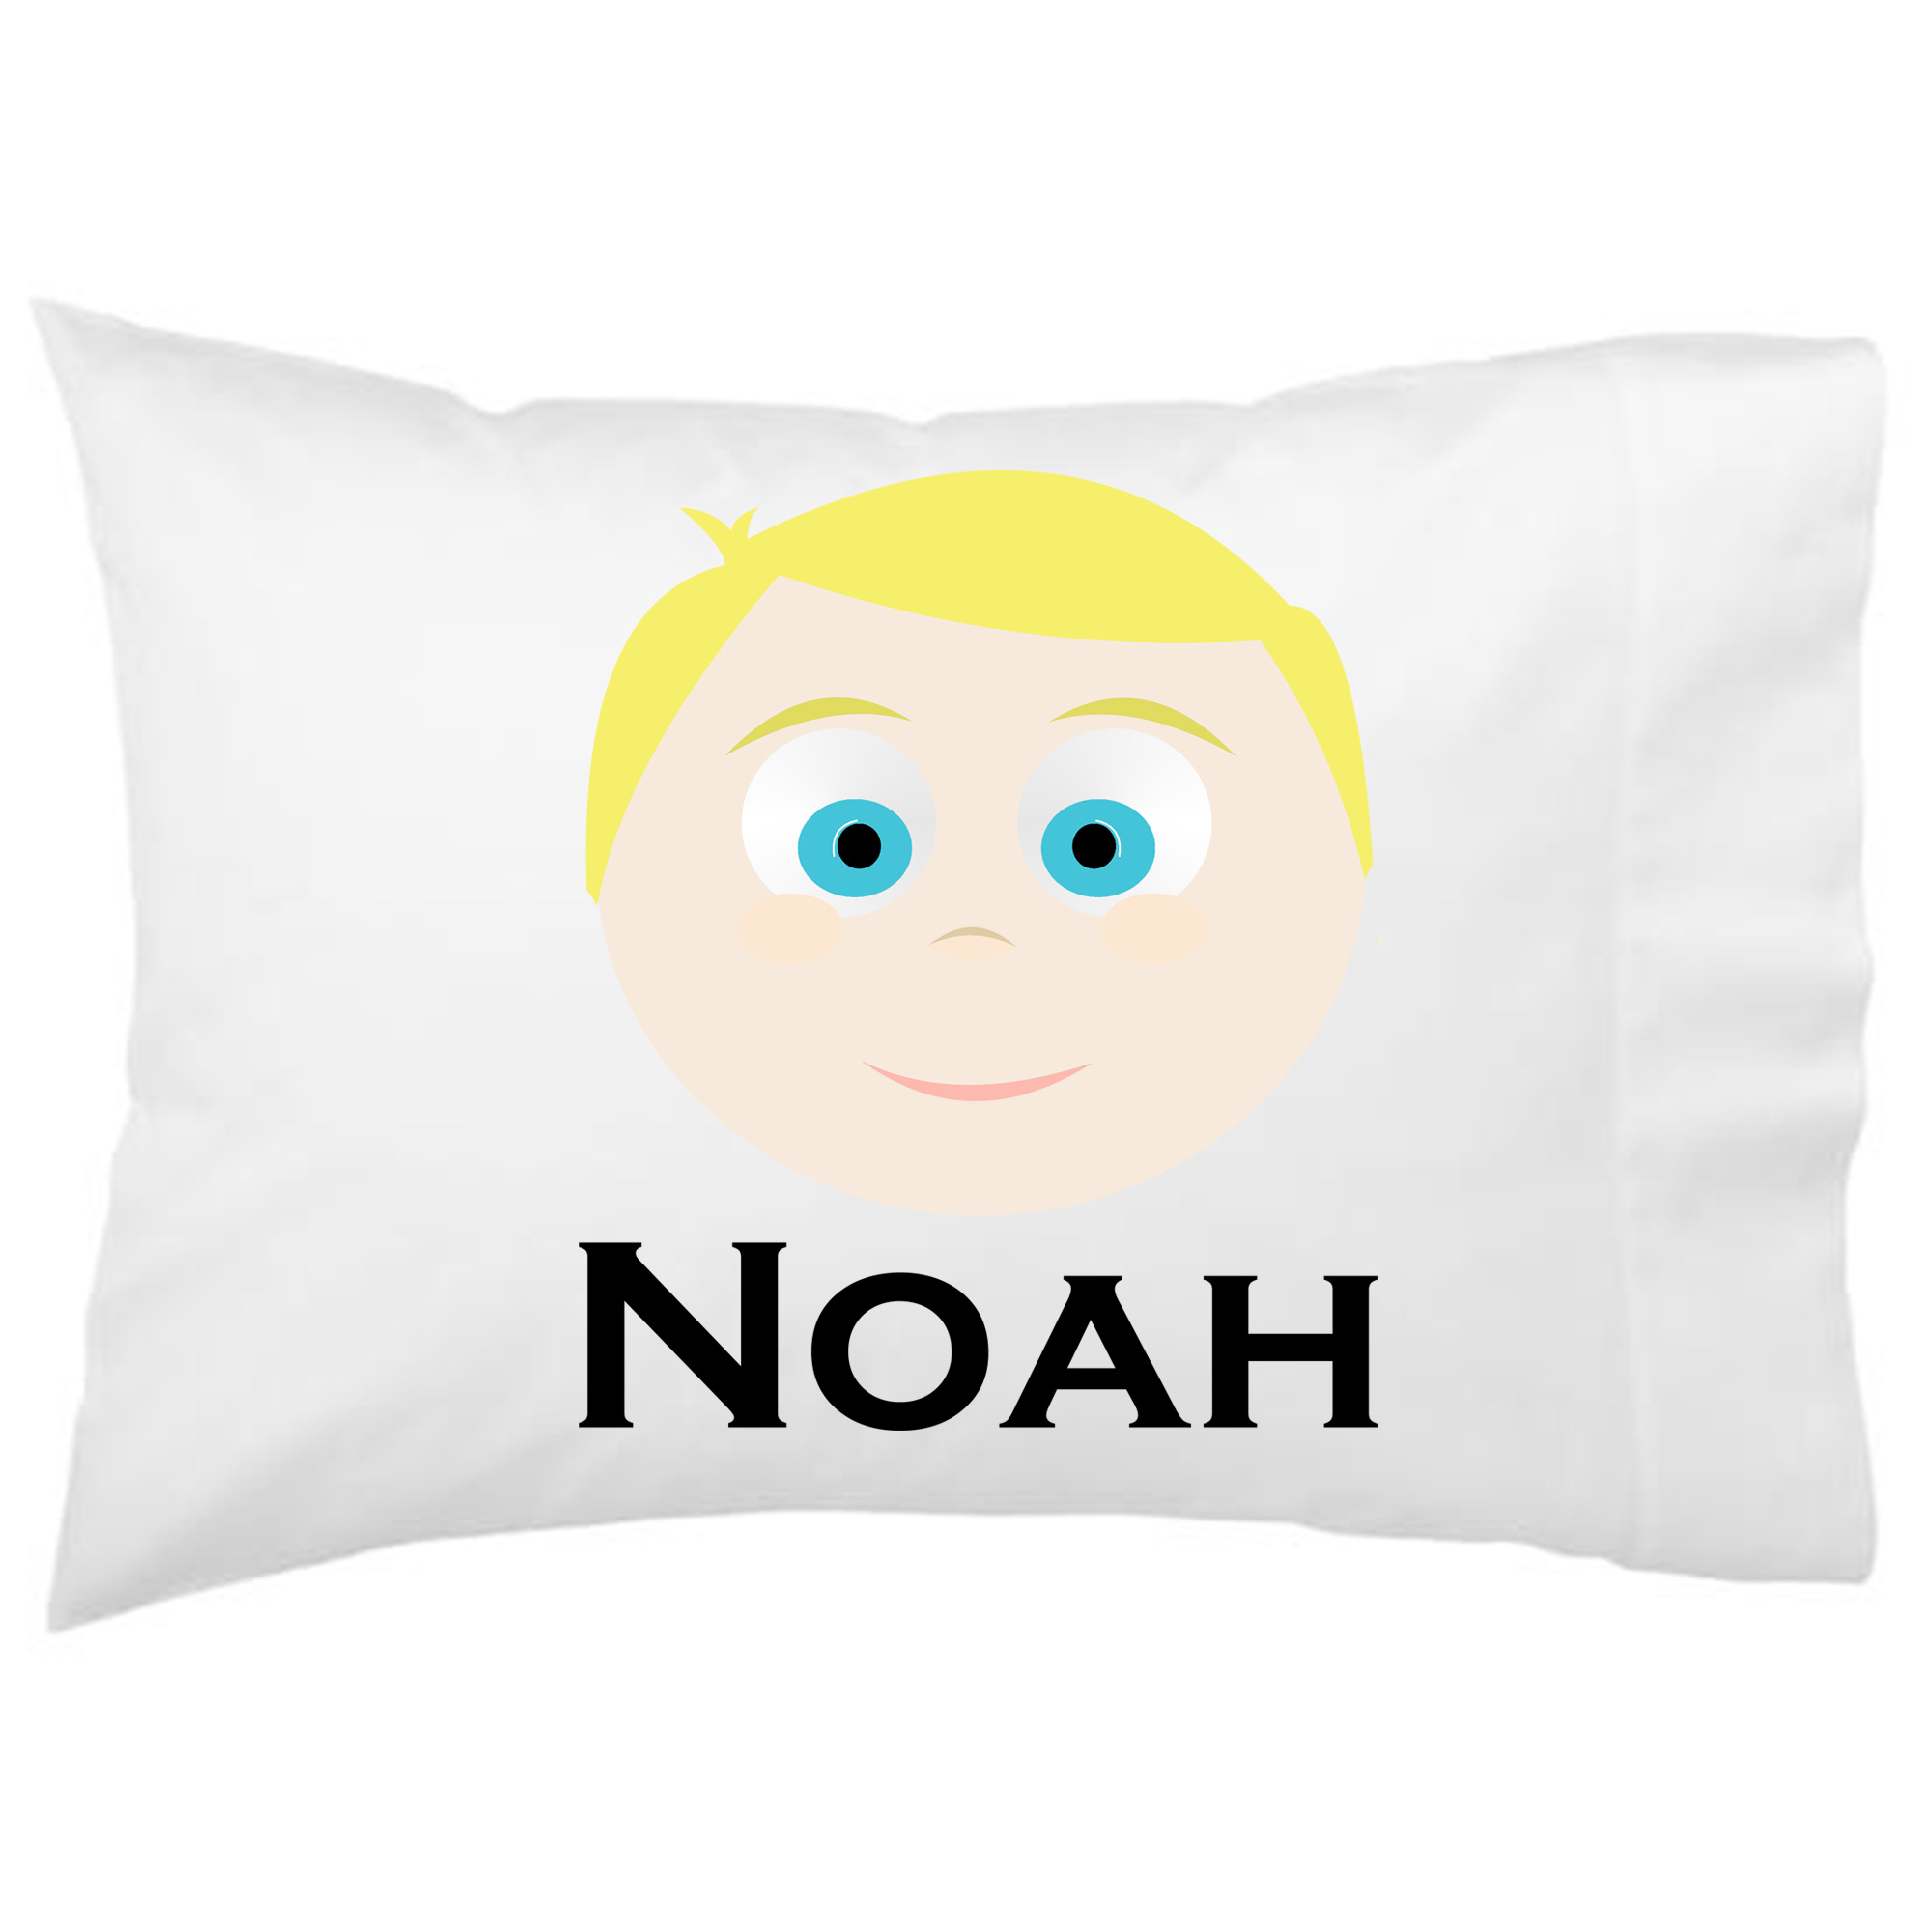 Personalized Girls Little Me Boys Pillowcase - Design Your Own Face Pillowcase